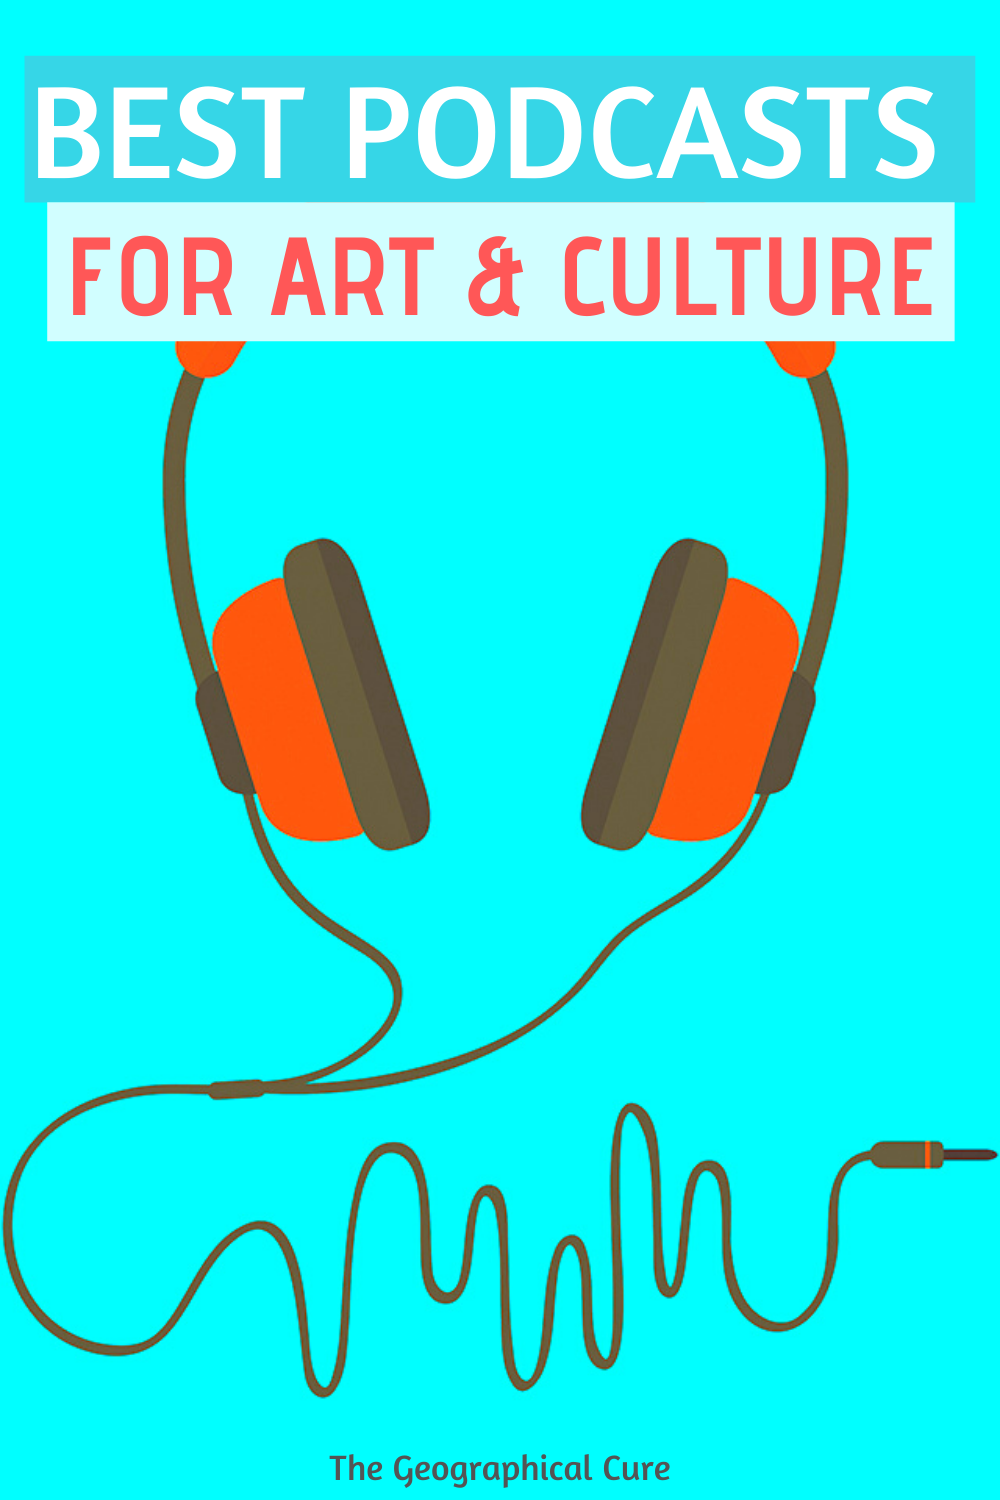 best podcasts for art, culture and history lovers